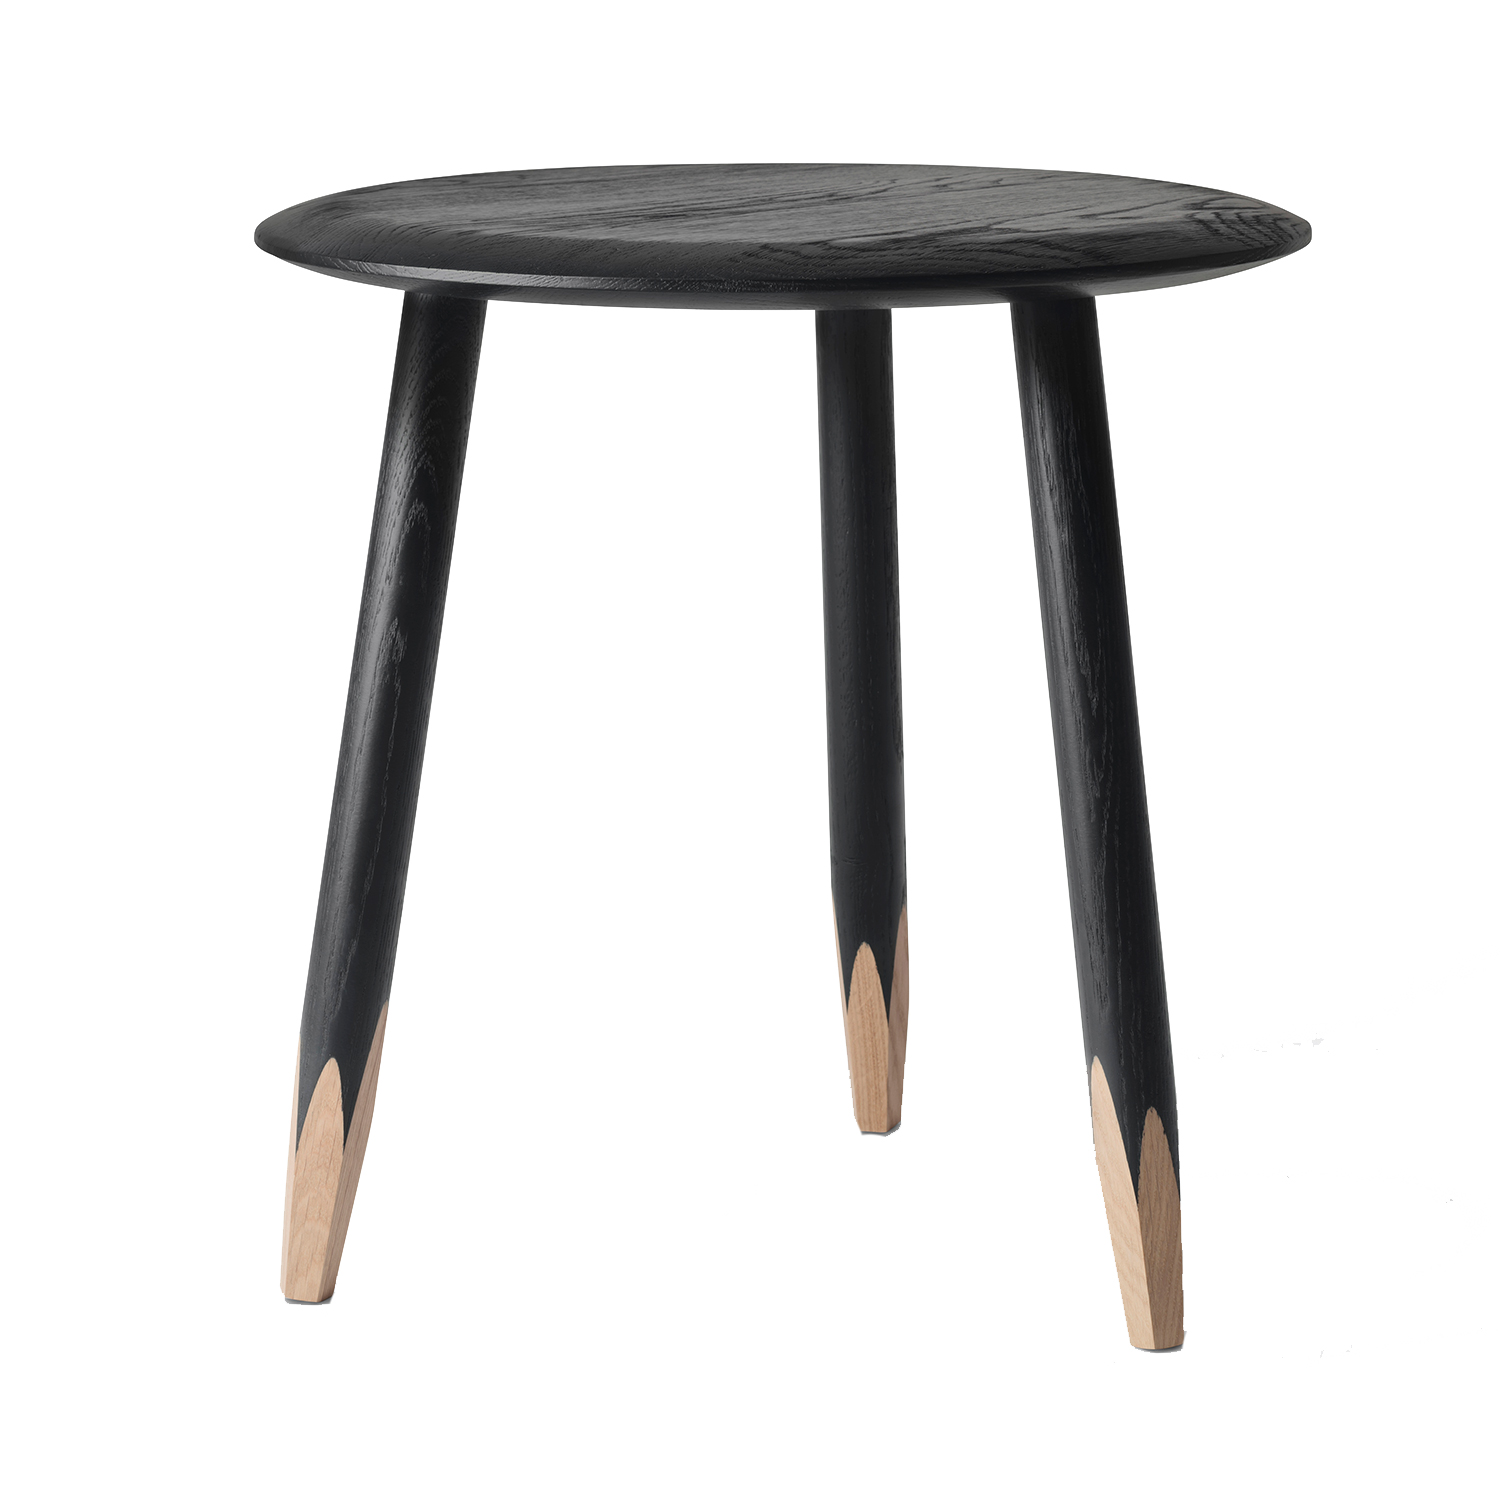 Bilde av &Tradition-Hoof Table Sw1, Svartbeiset Eik